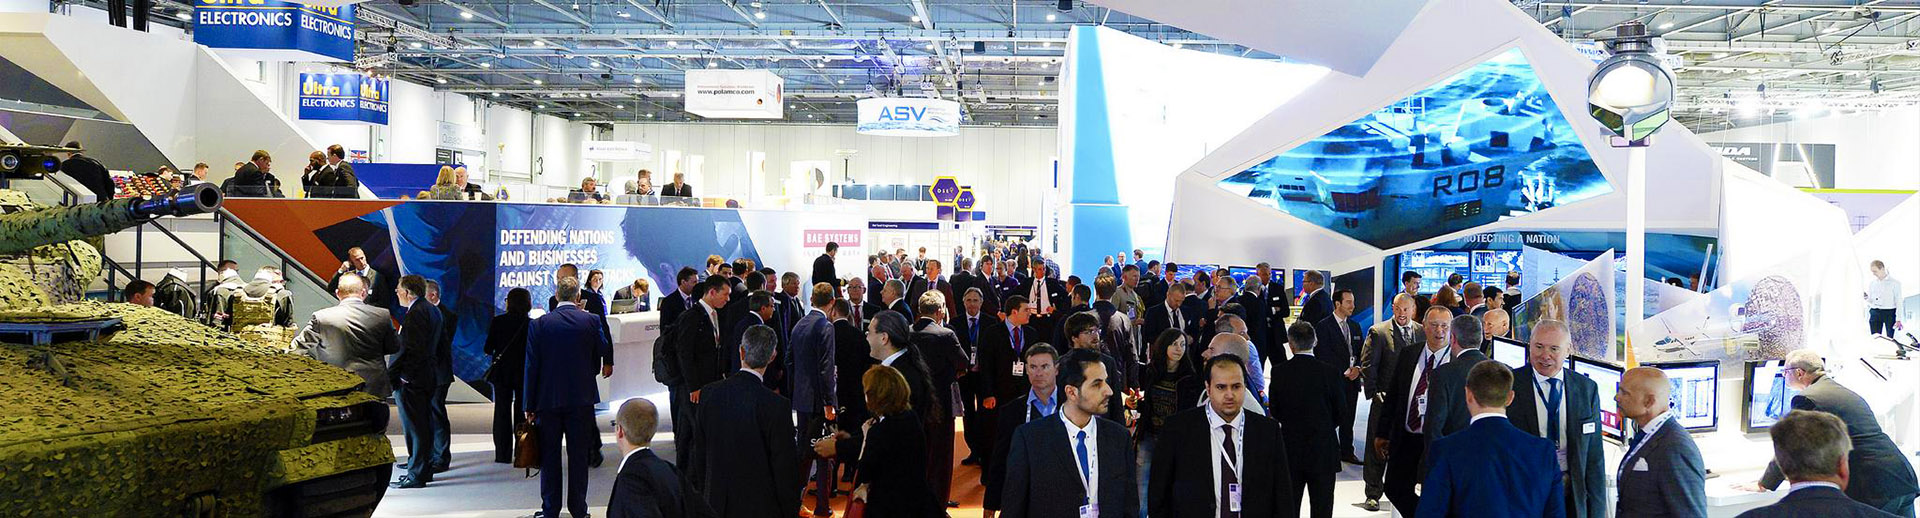 AV and LED Screens Hire for DSEI at ExCeL London